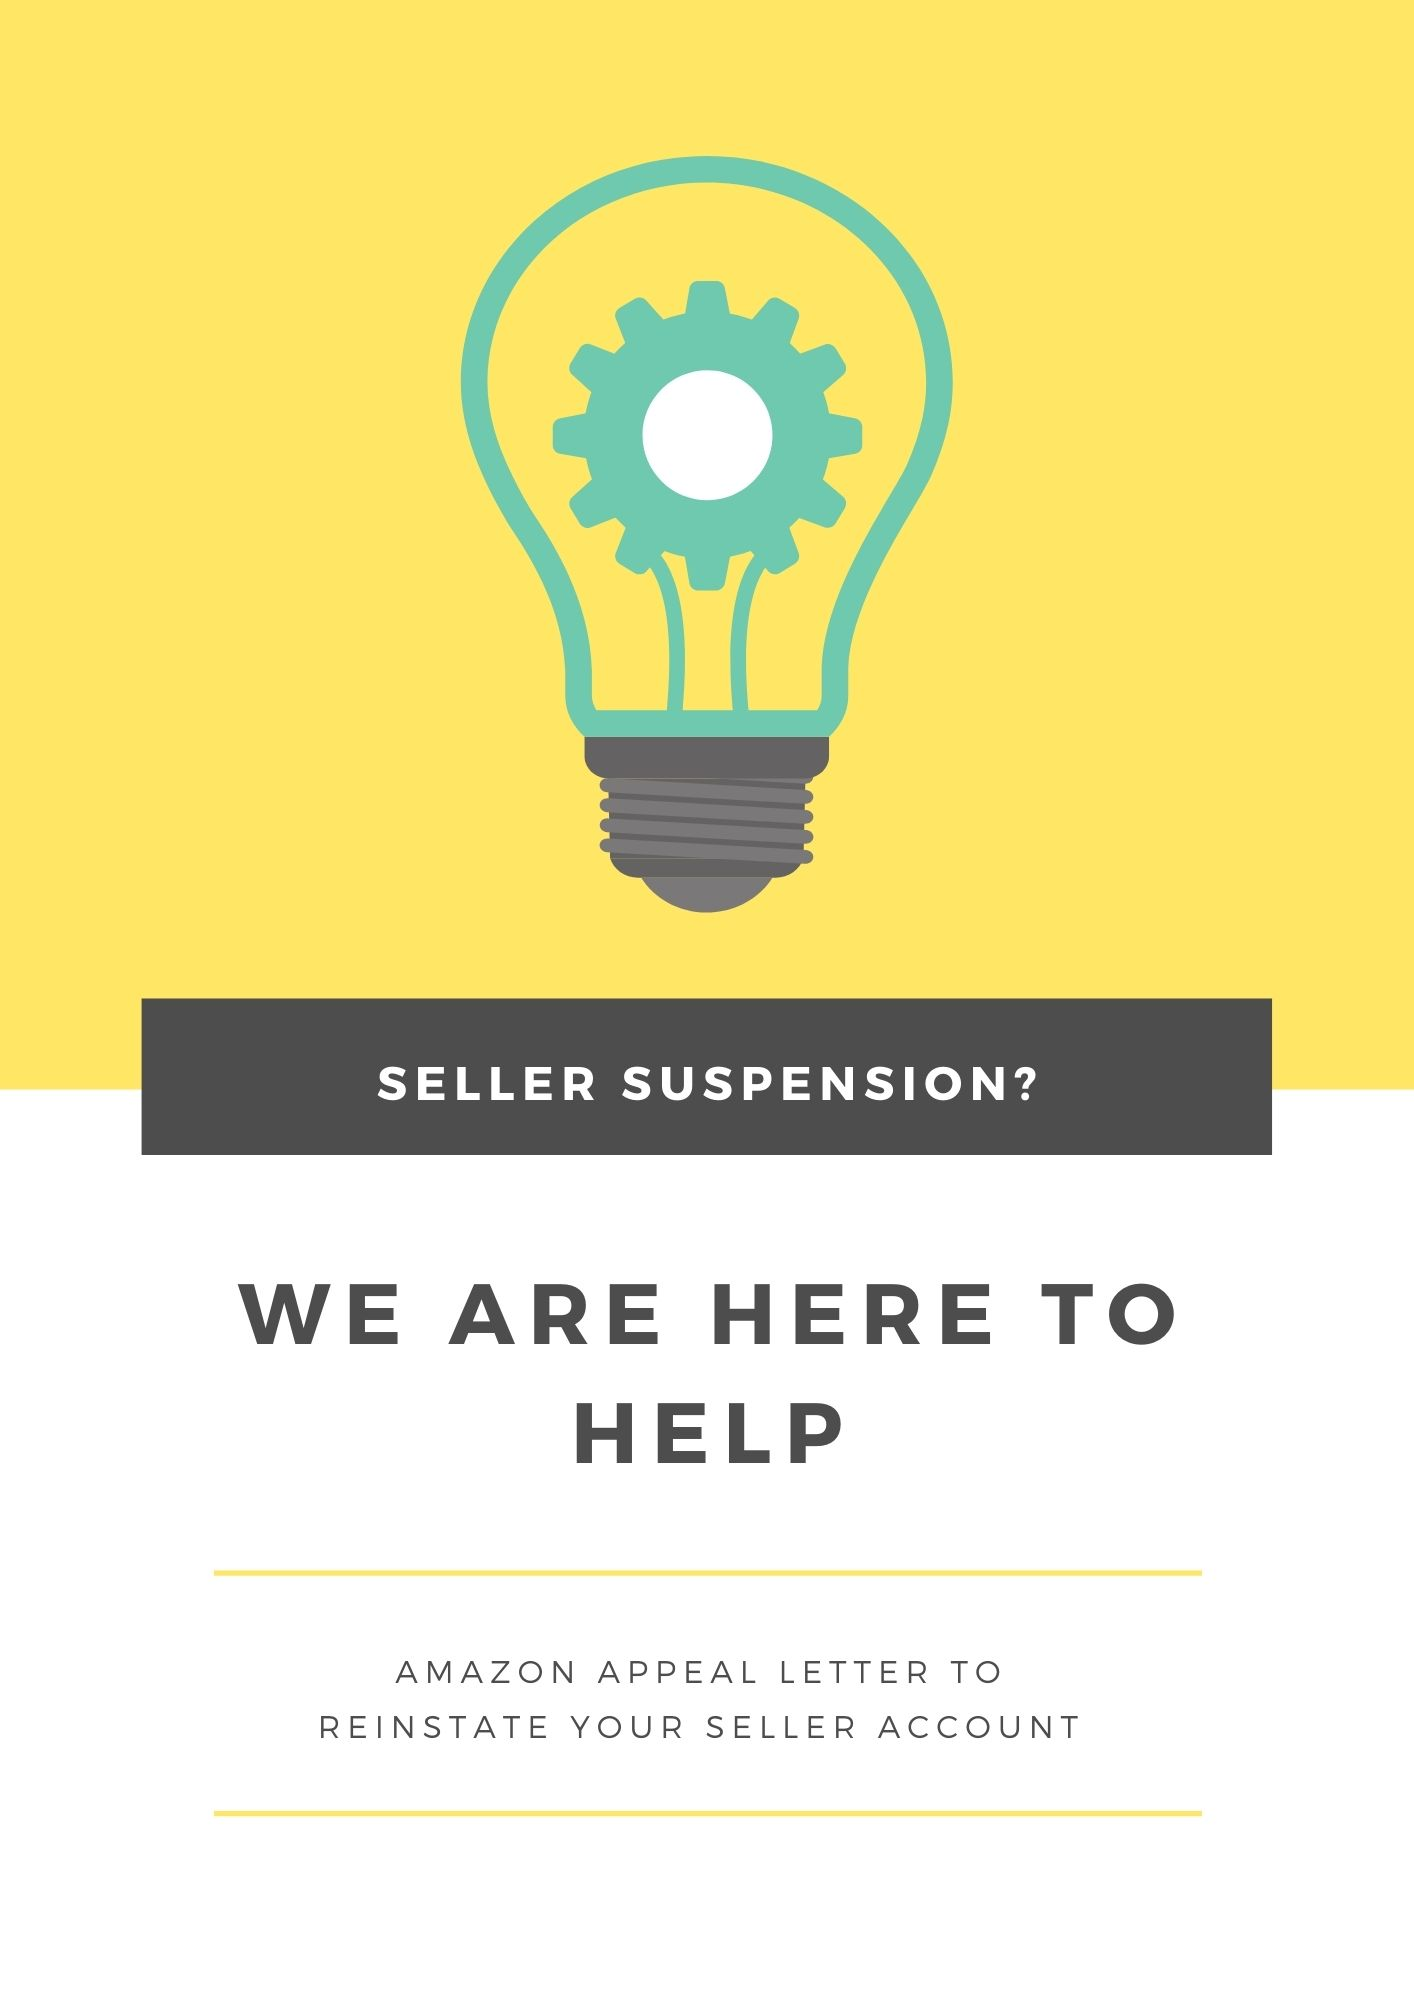 Plan of Action For Amazon Appeal Letter